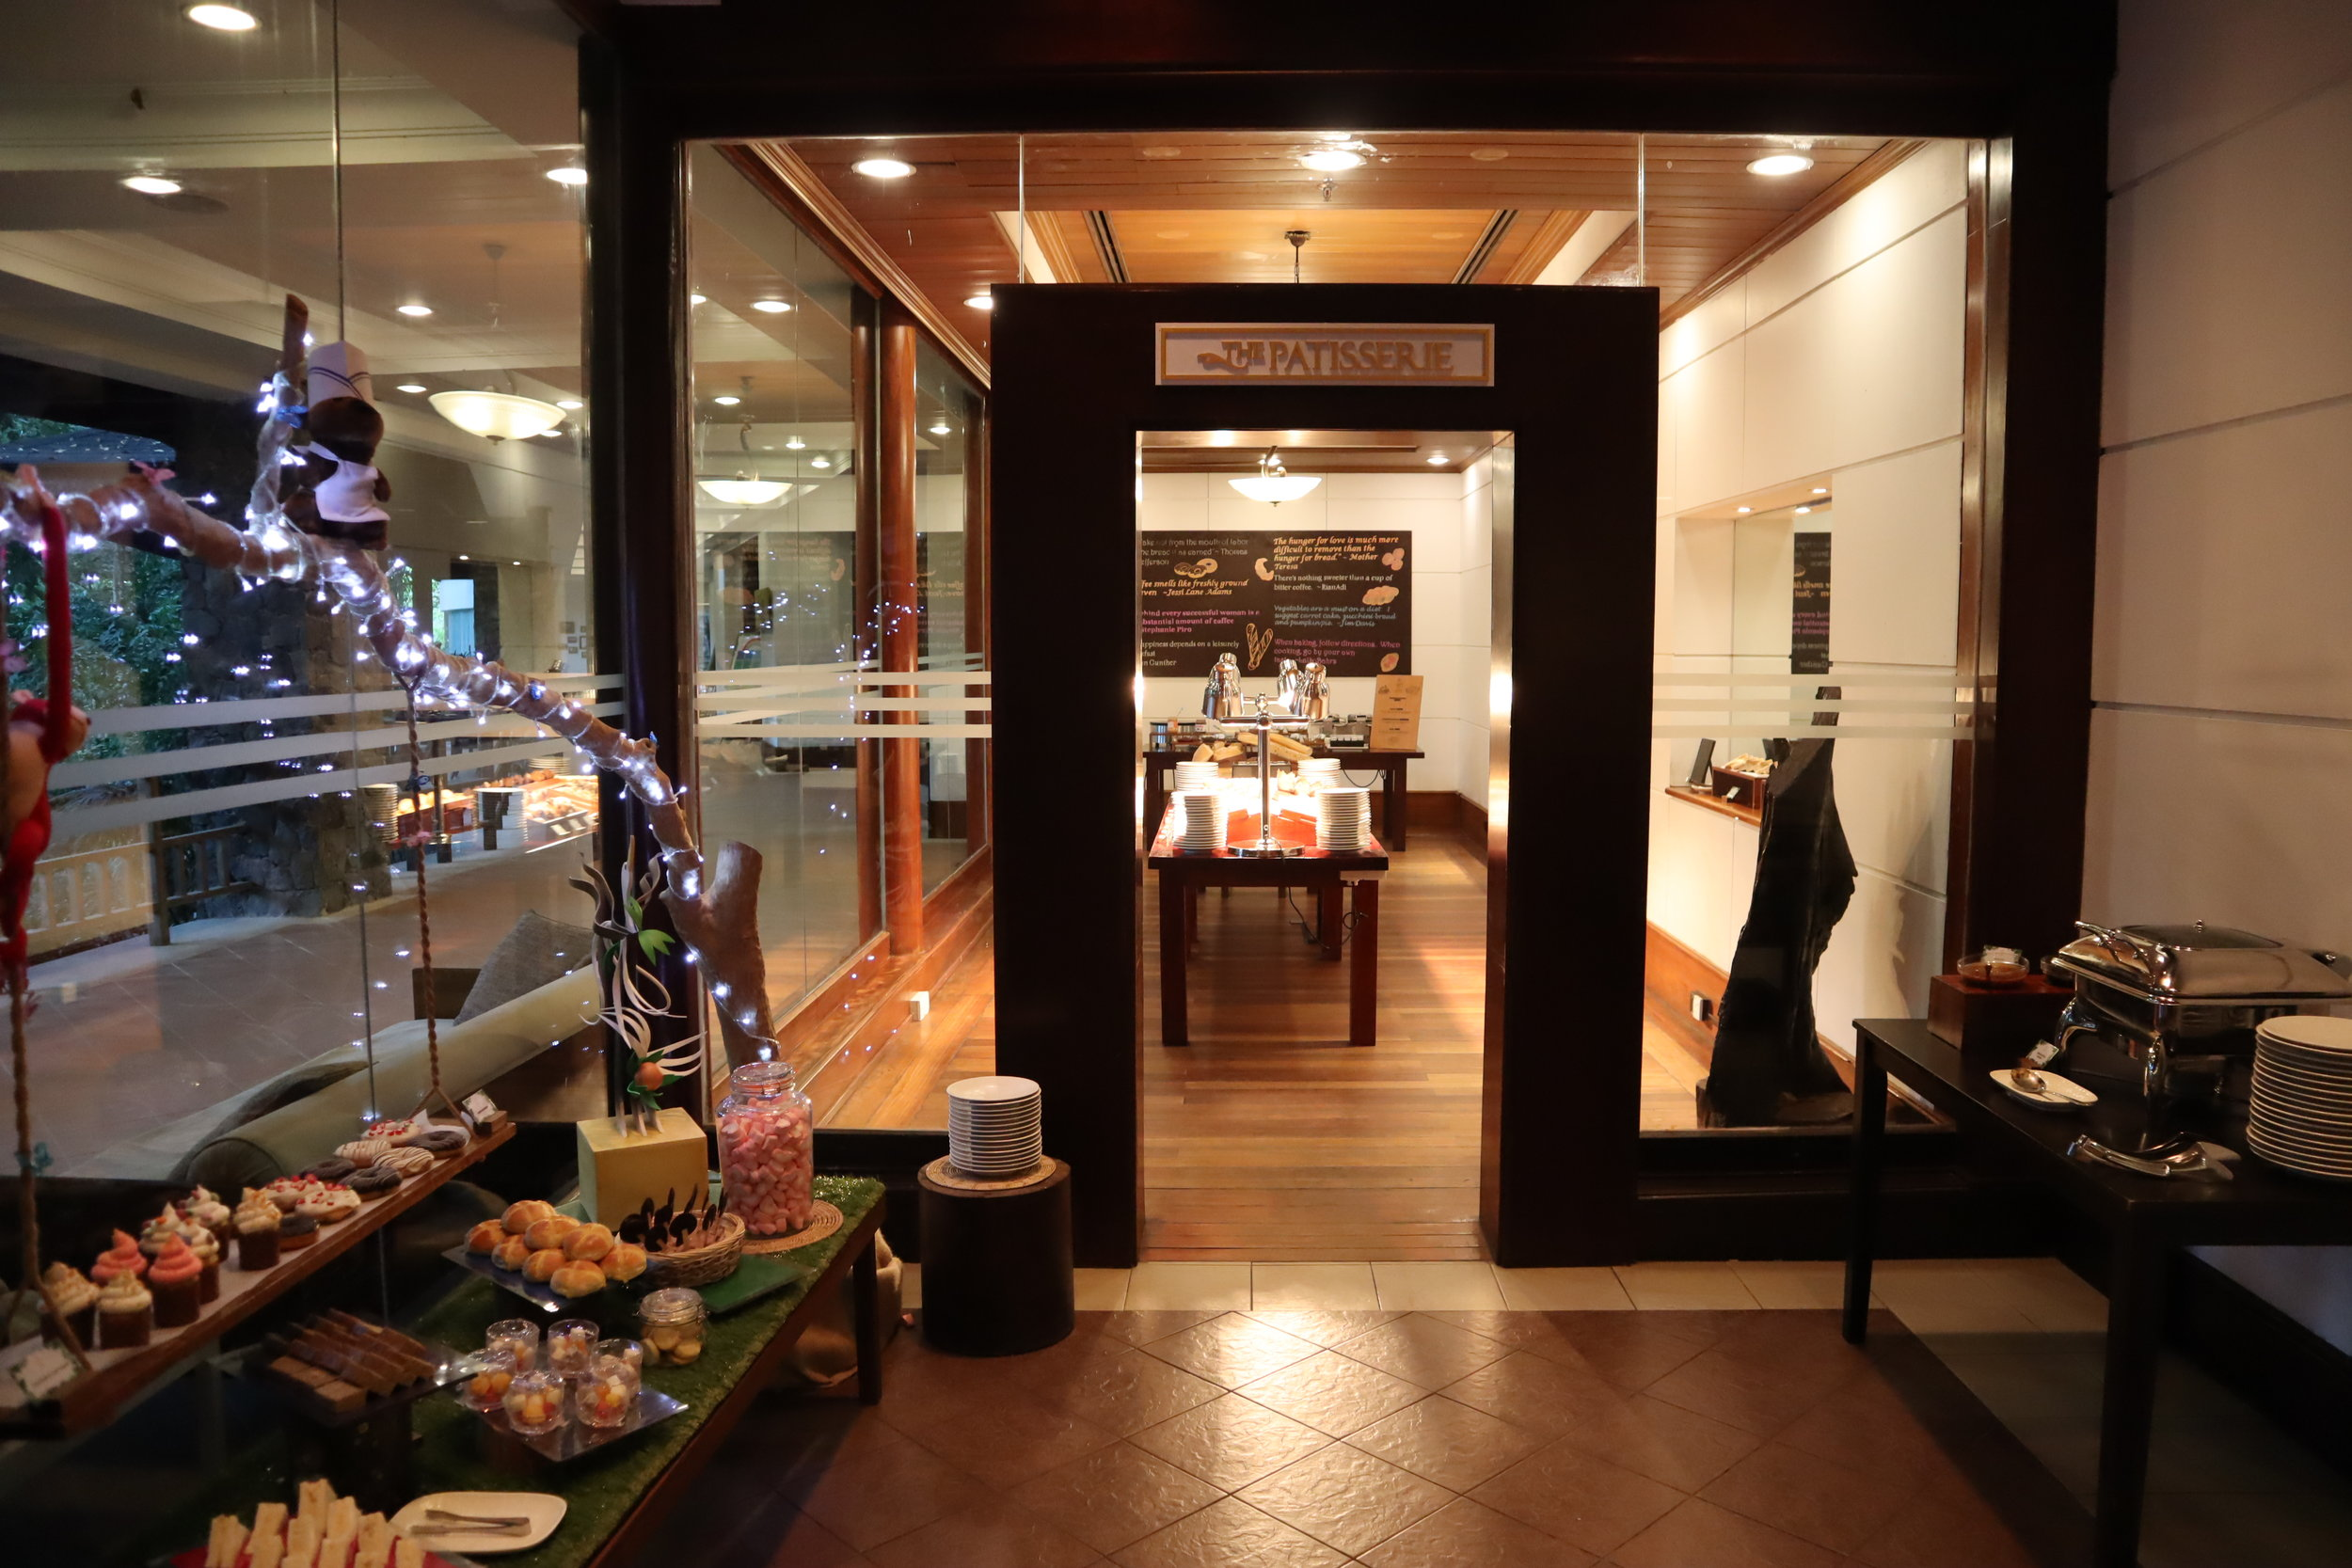 The Andaman Langkawi – The Patisserie